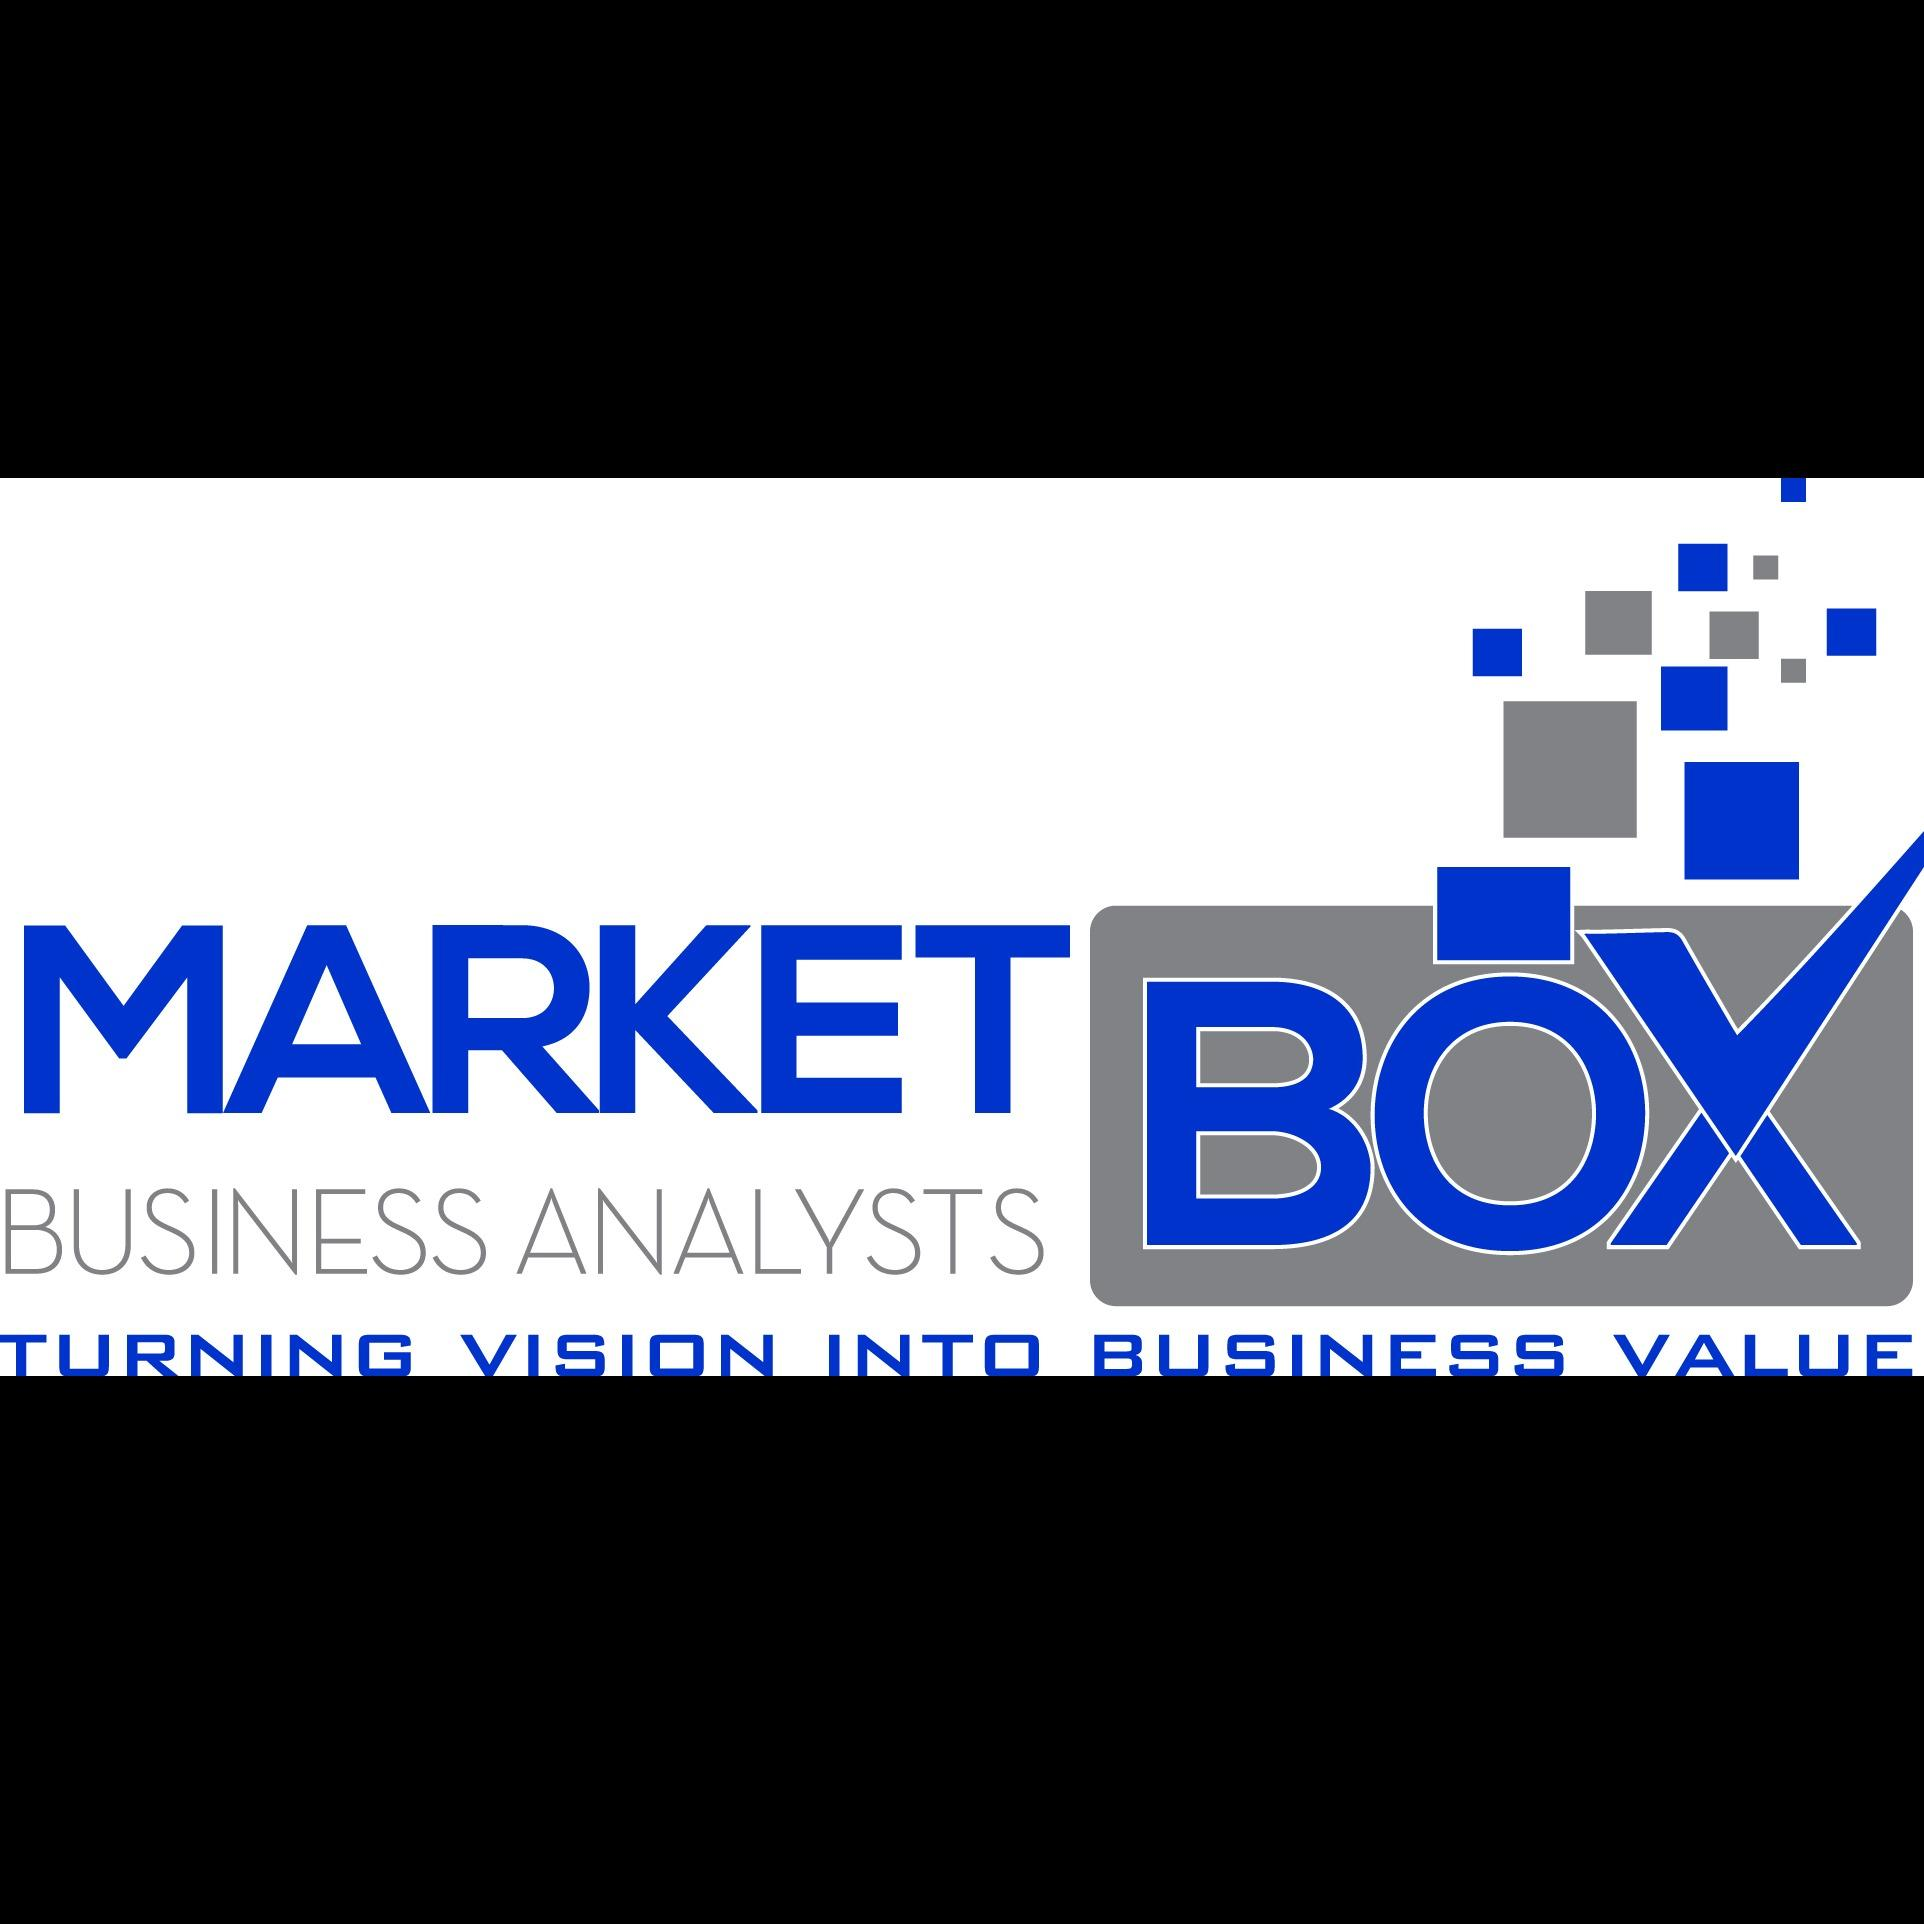 Marketbox Business Analysts